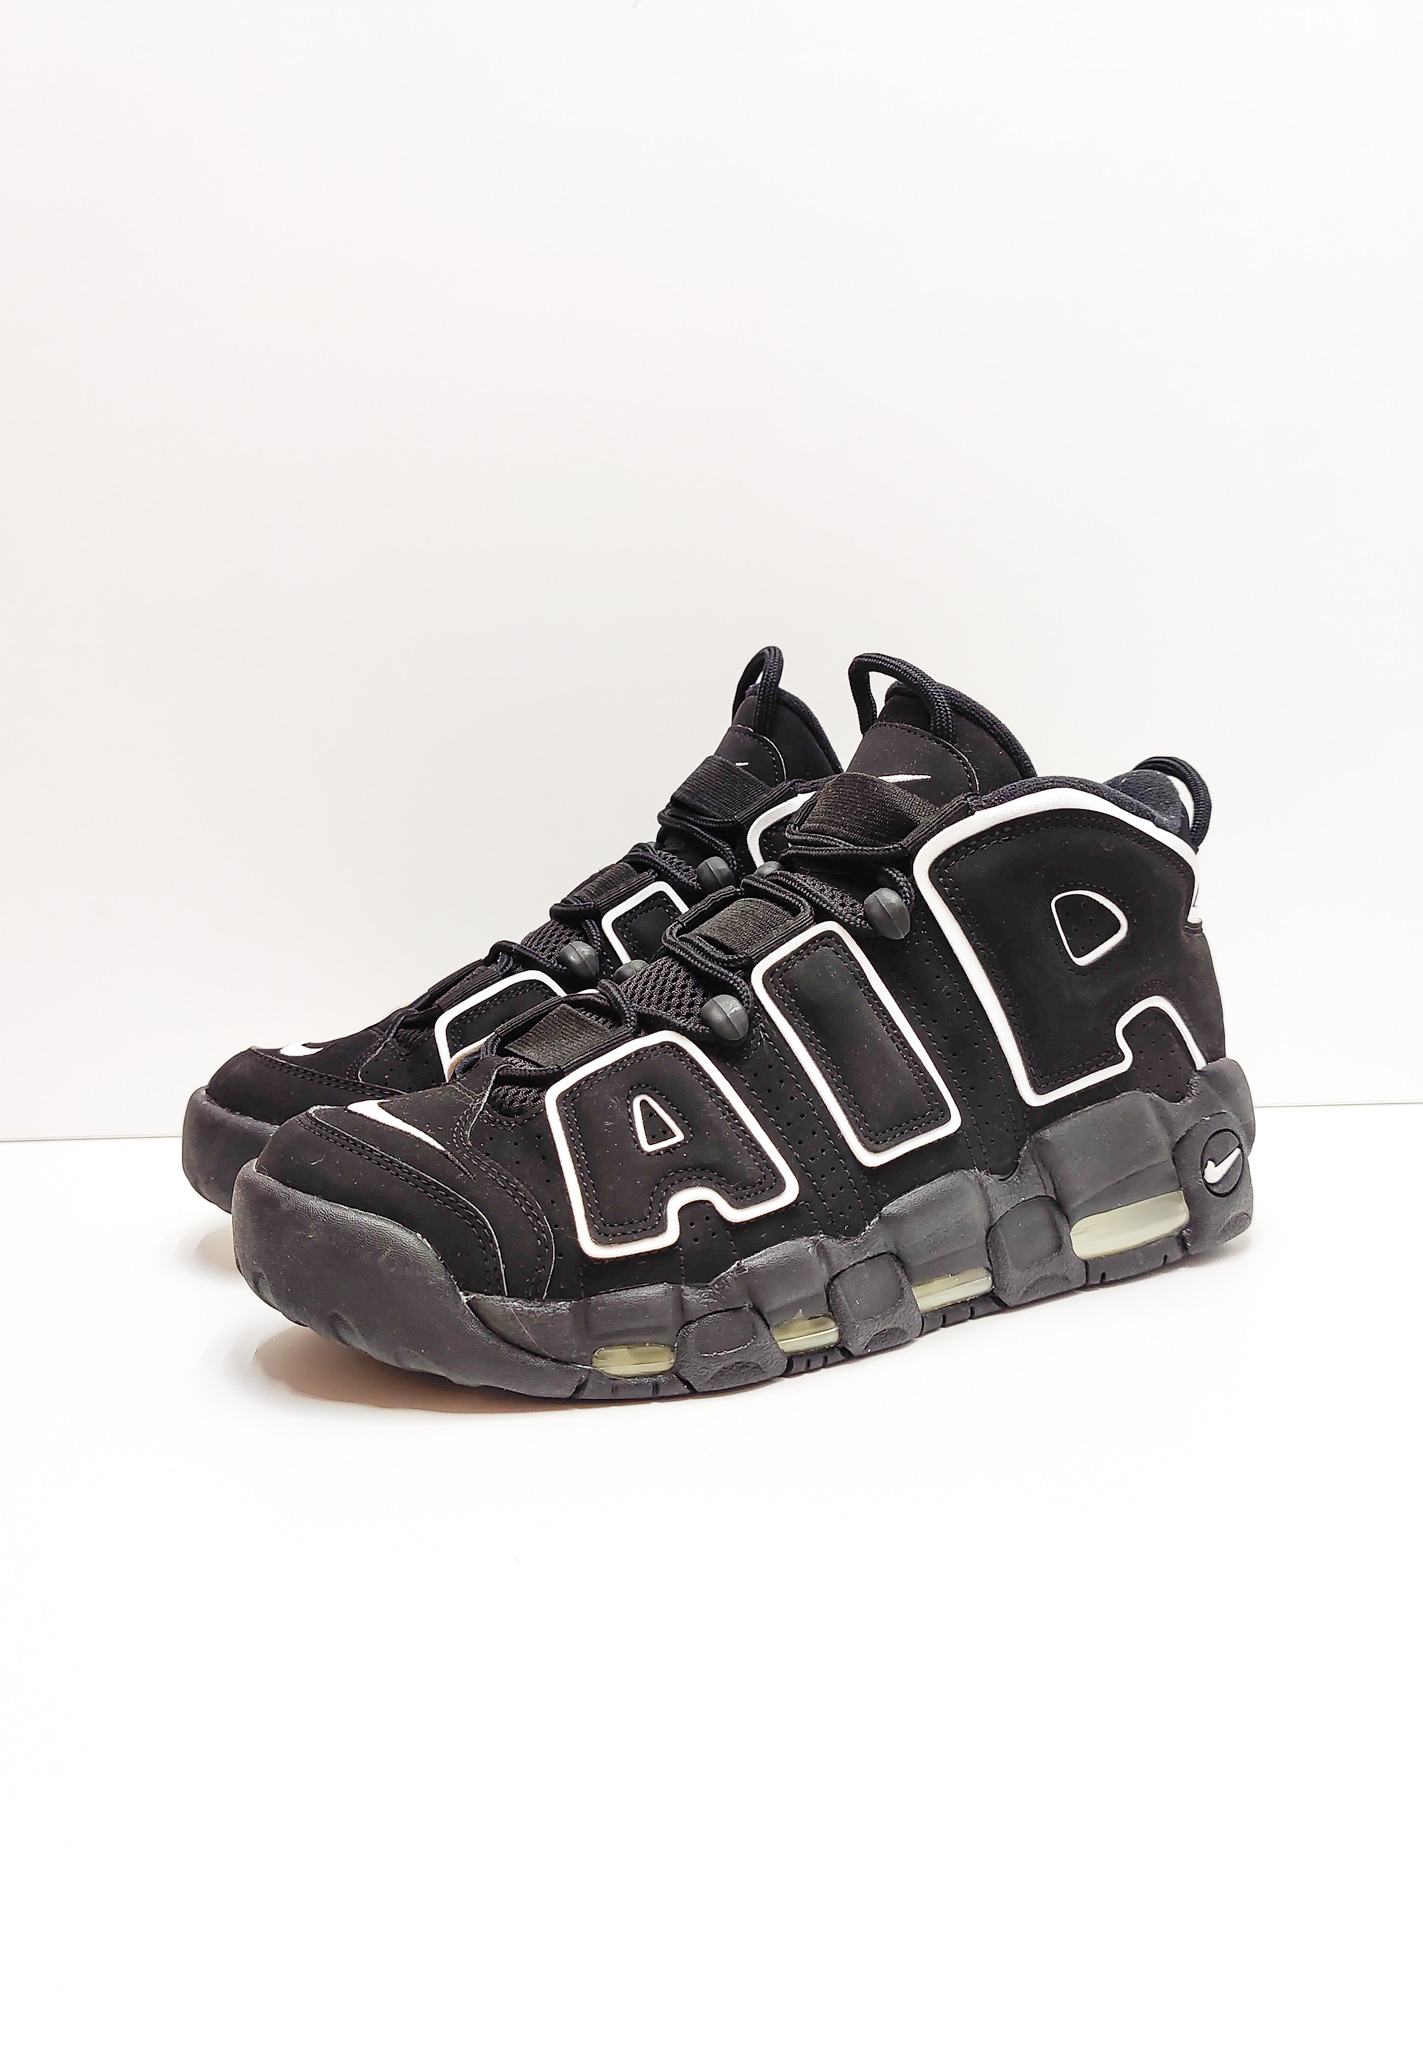 Nike Air More Uptempo Black White (2016/2020)